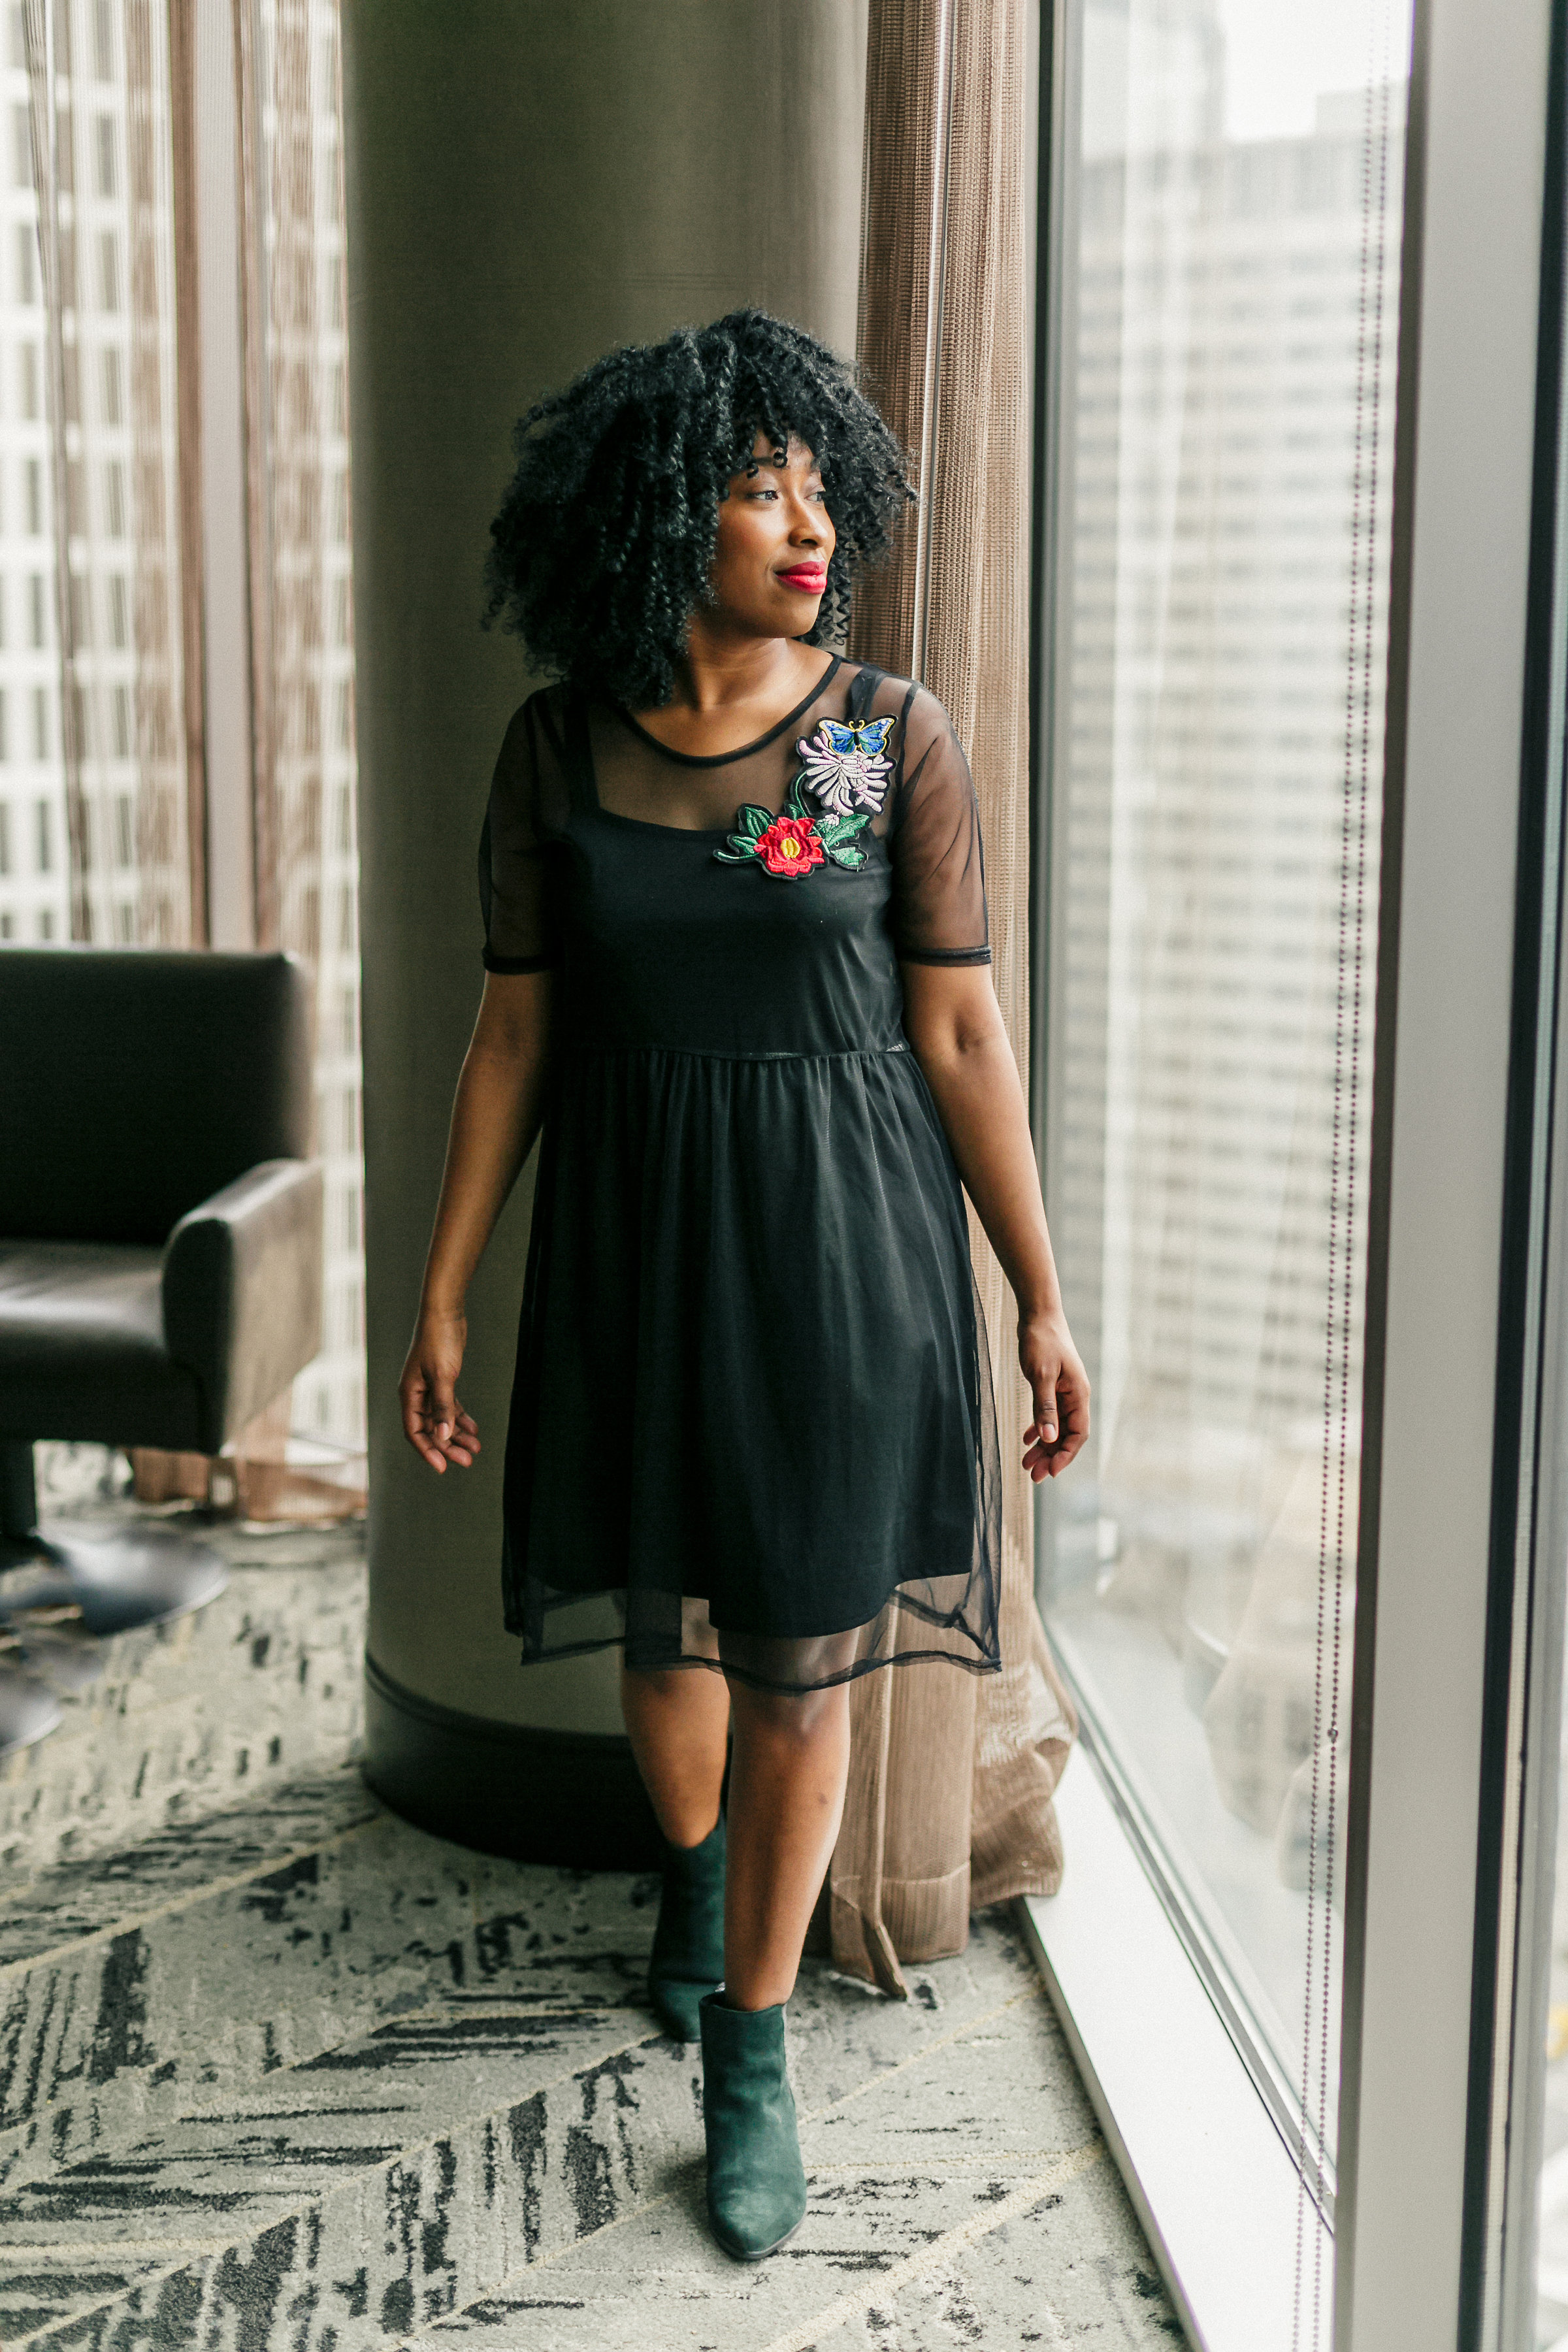 Mesh dress, floral dress, embroidered dress, how to style, holiday party outfits,